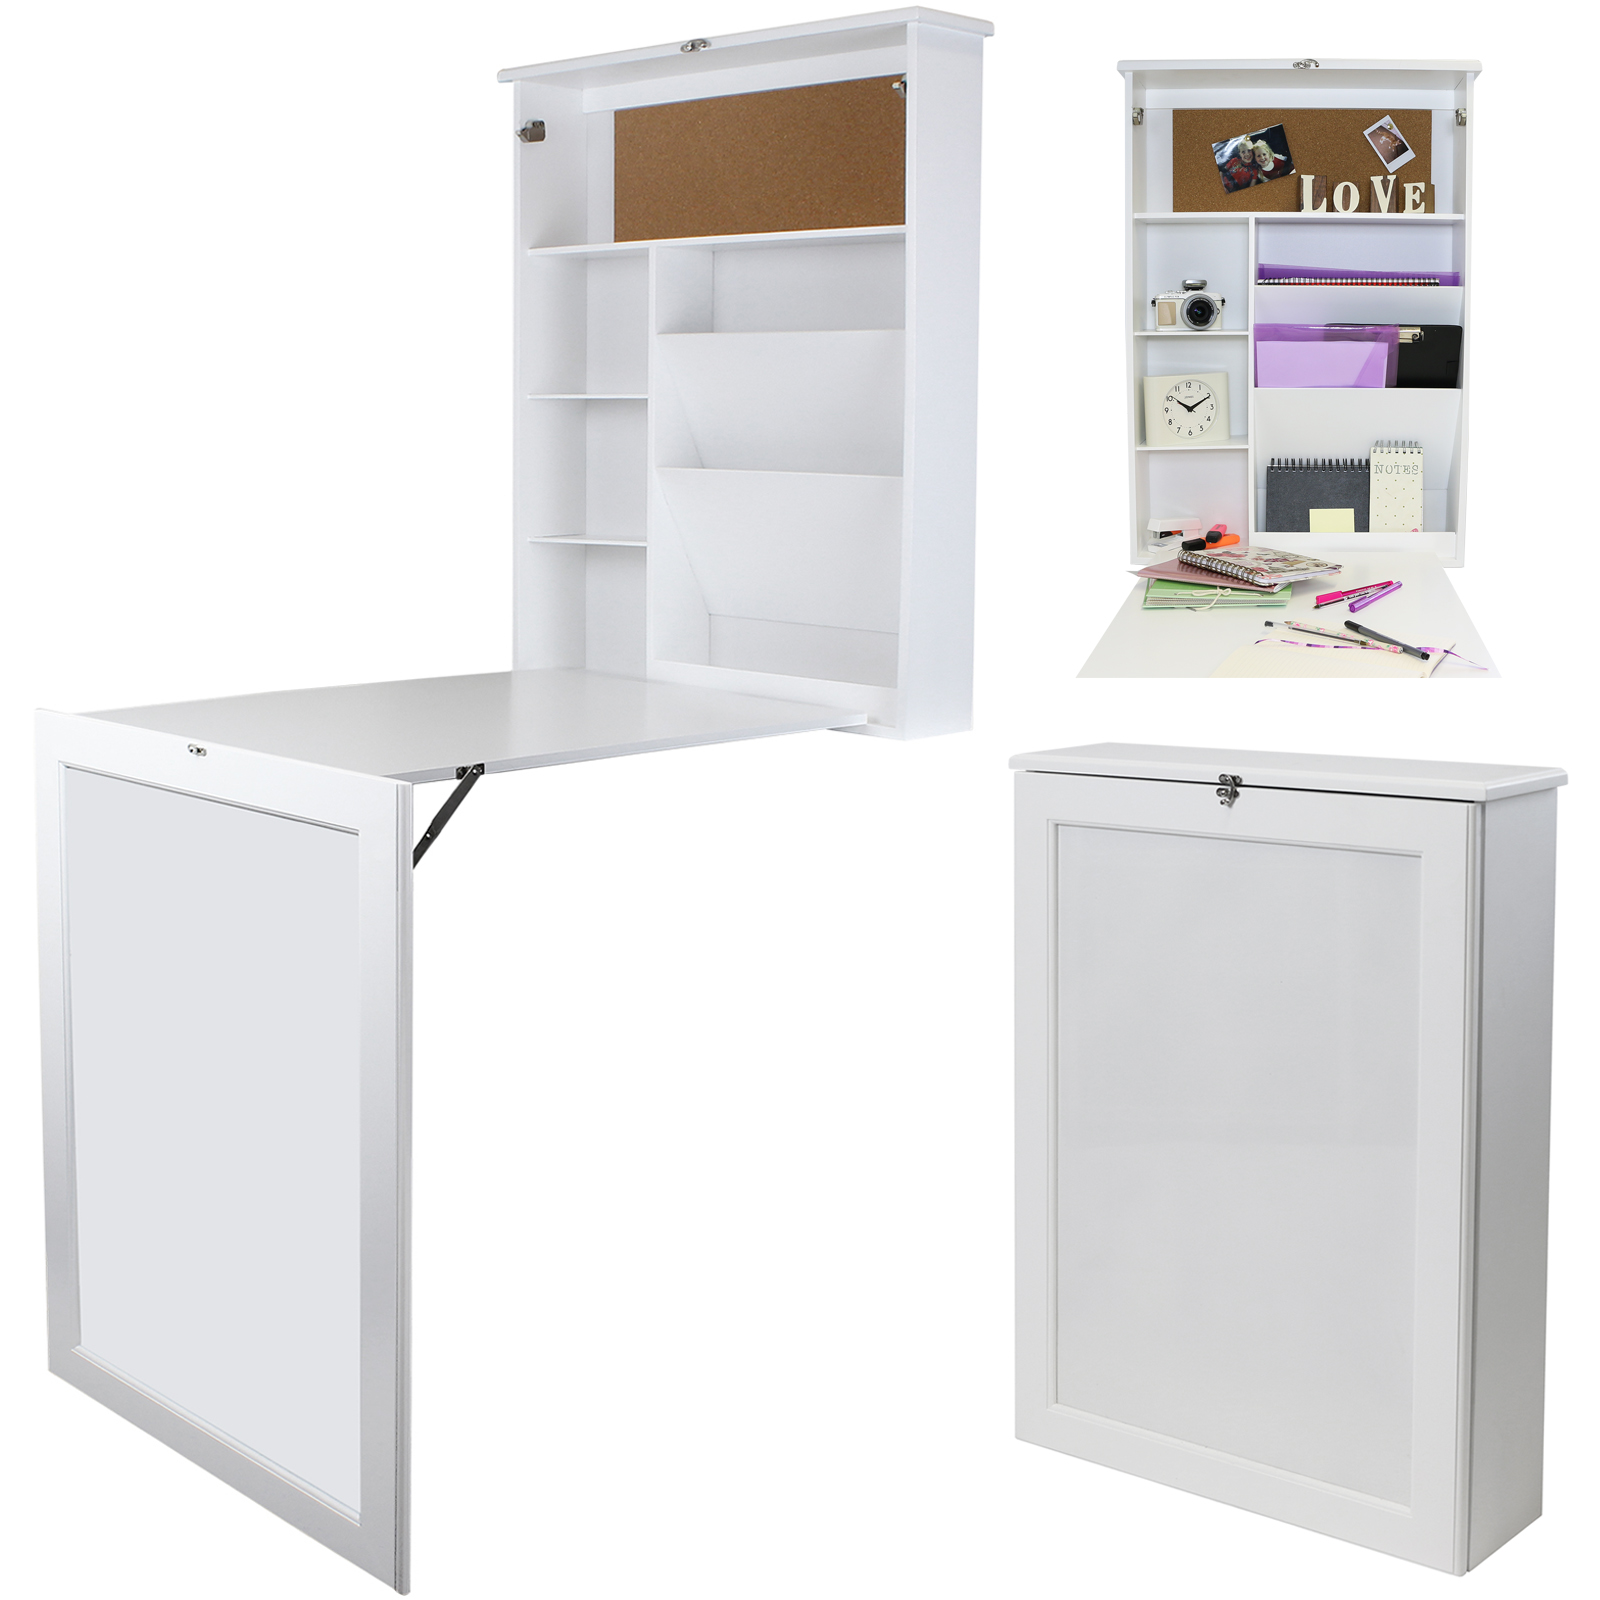 hartleys wall mounted fold out drop leaf table folding desk whiteboard storage ebay. Black Bedroom Furniture Sets. Home Design Ideas